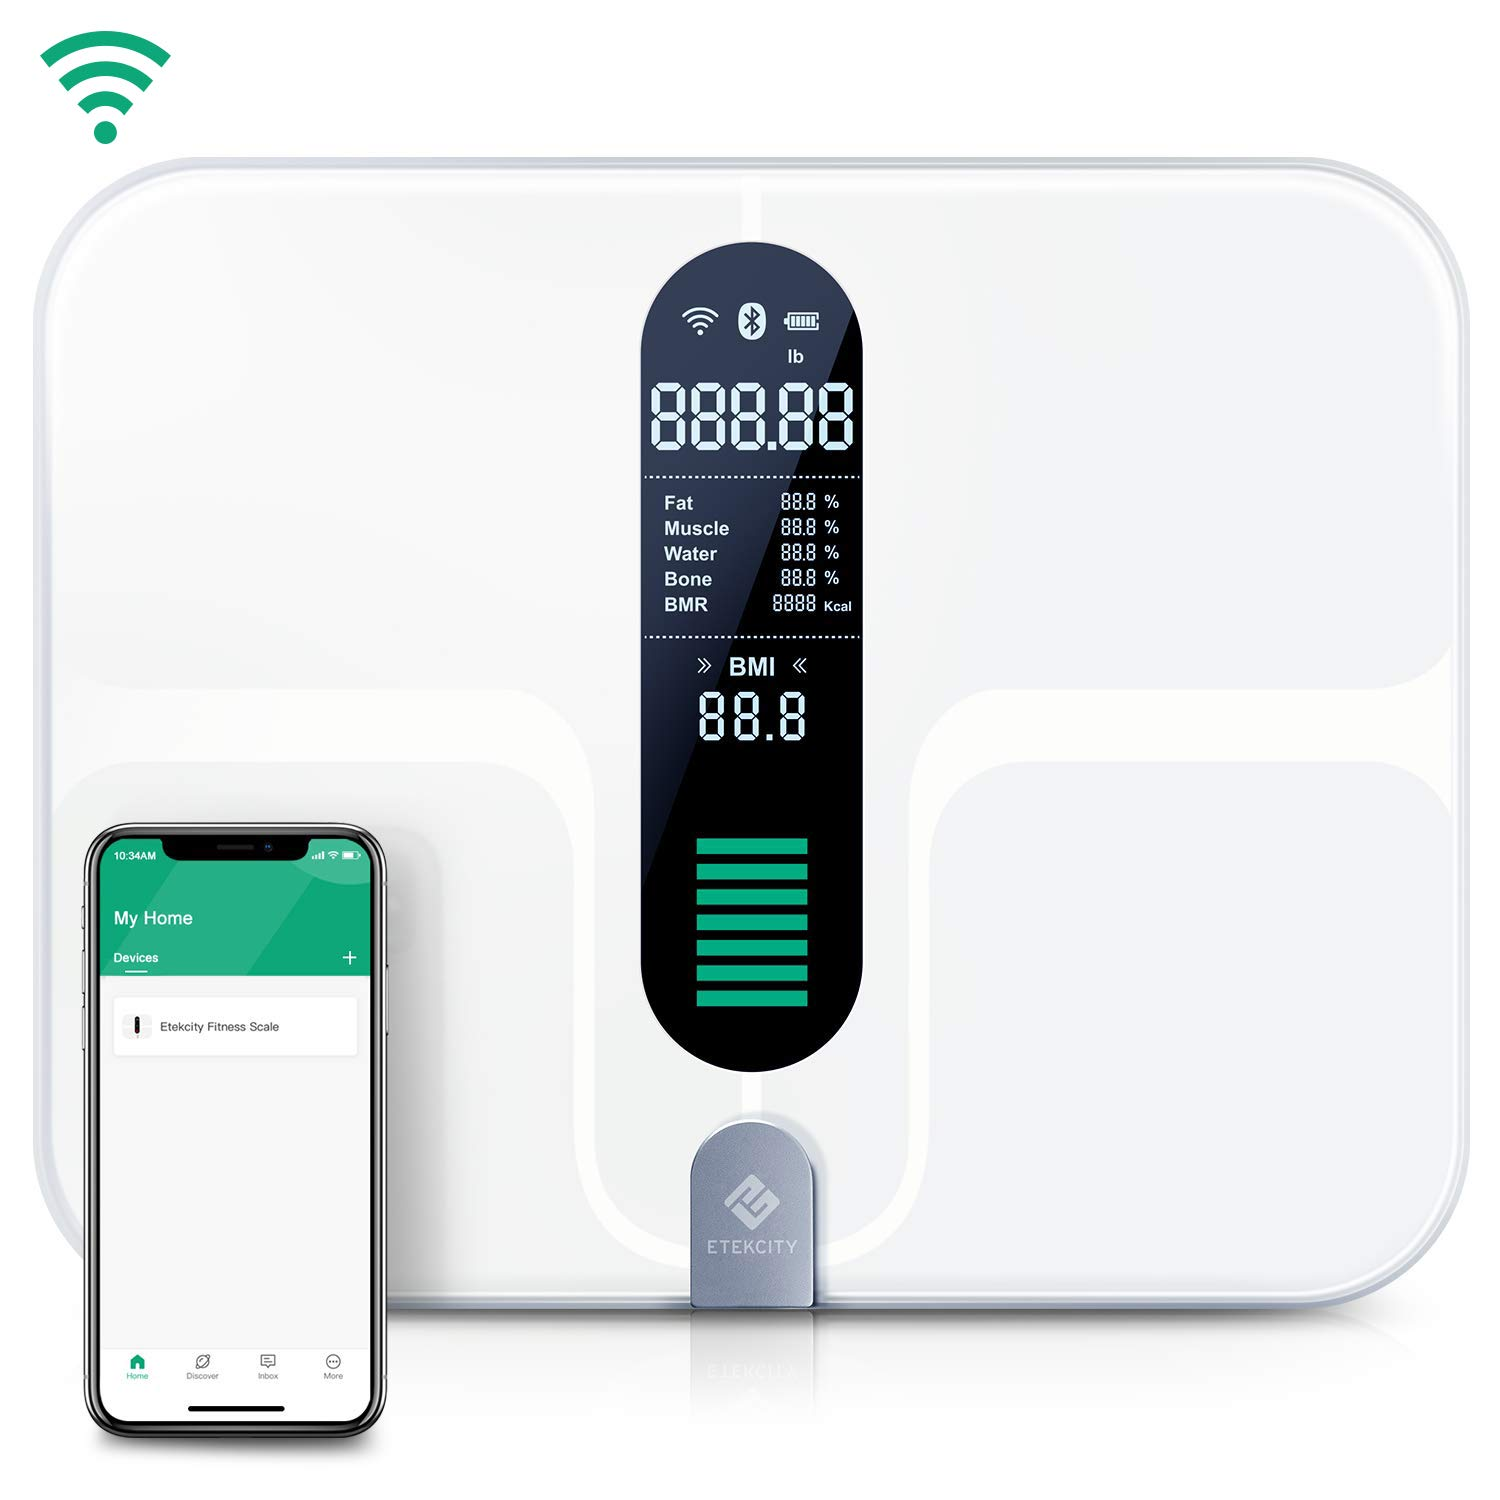 Etekcity WiFi Smart Scale, USB Rechargeable Bluetooth Body Fat Scale - Digital Bathroom Weight Scale with 12 Body Composition Measurements, Extra-Large Platform & ITO Conductive Glass, 400lb (180kg) by Etekcity